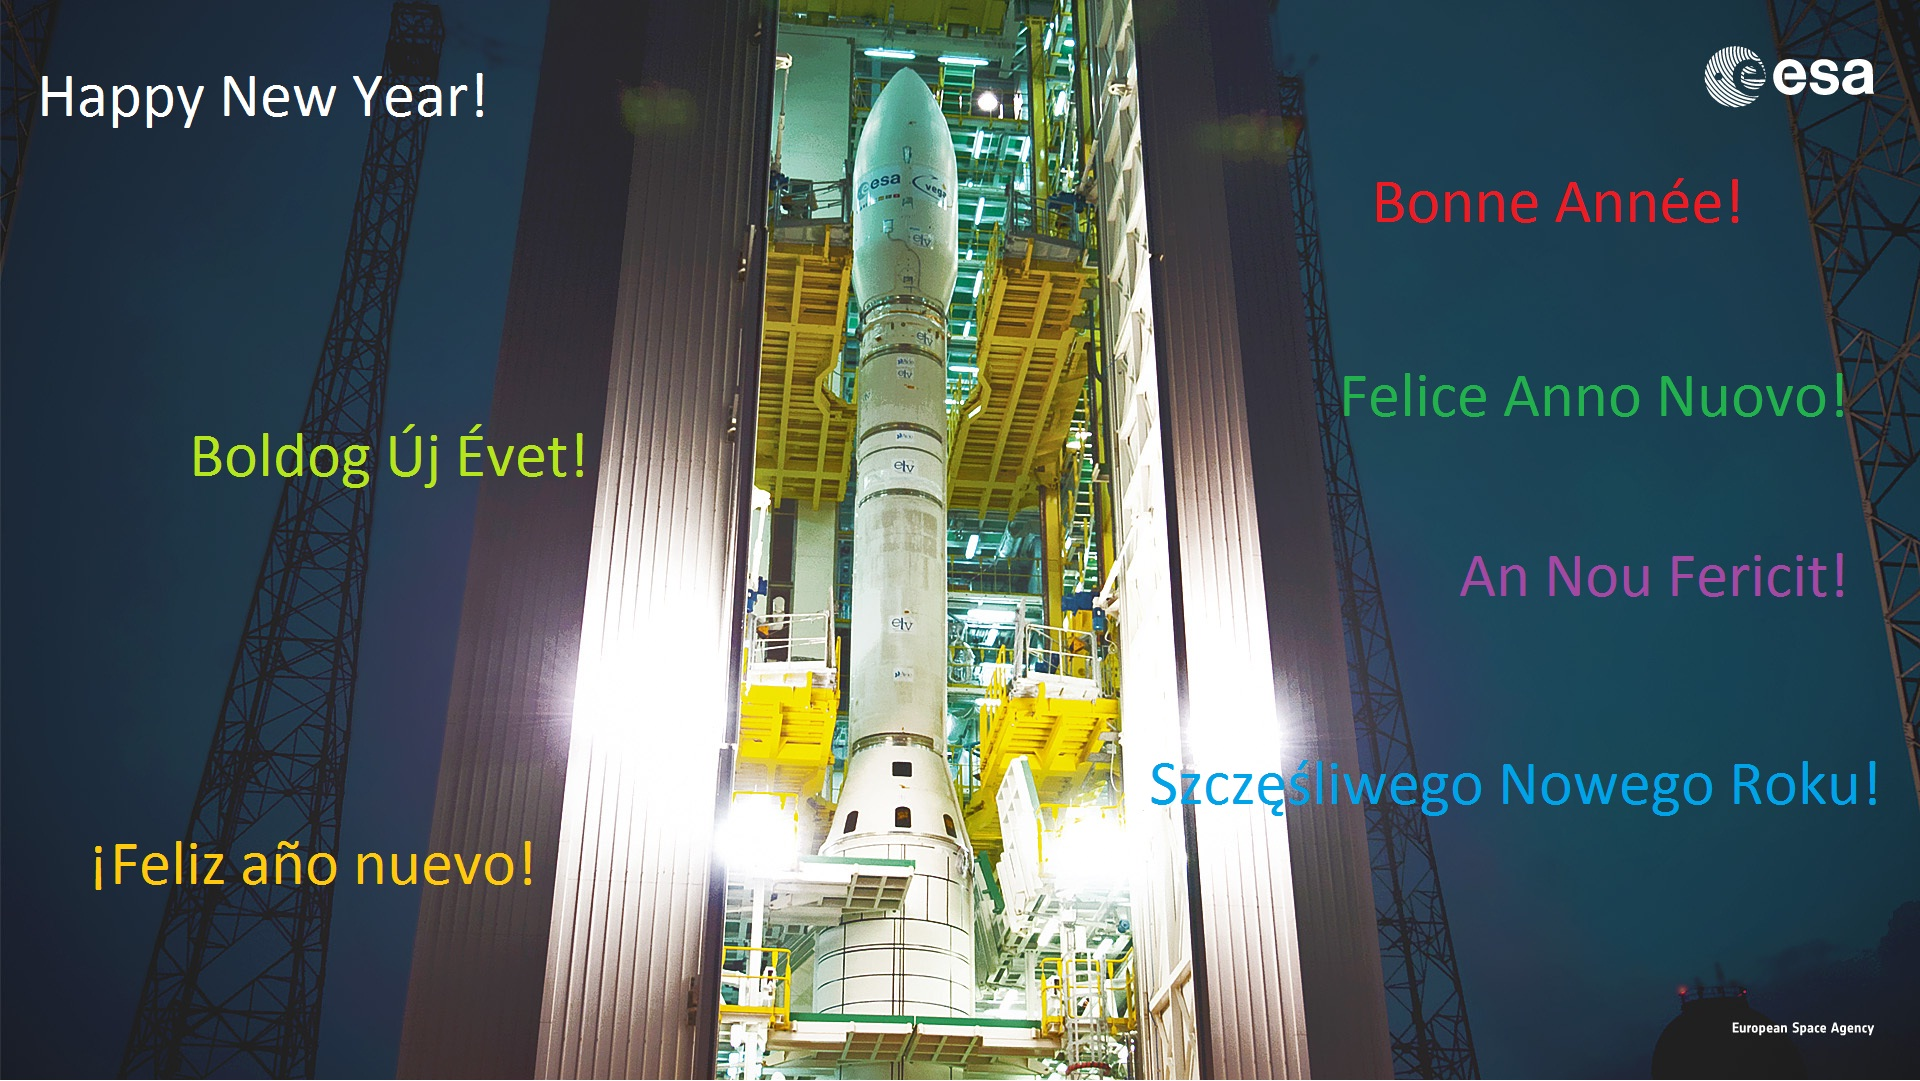 HNY from ESA